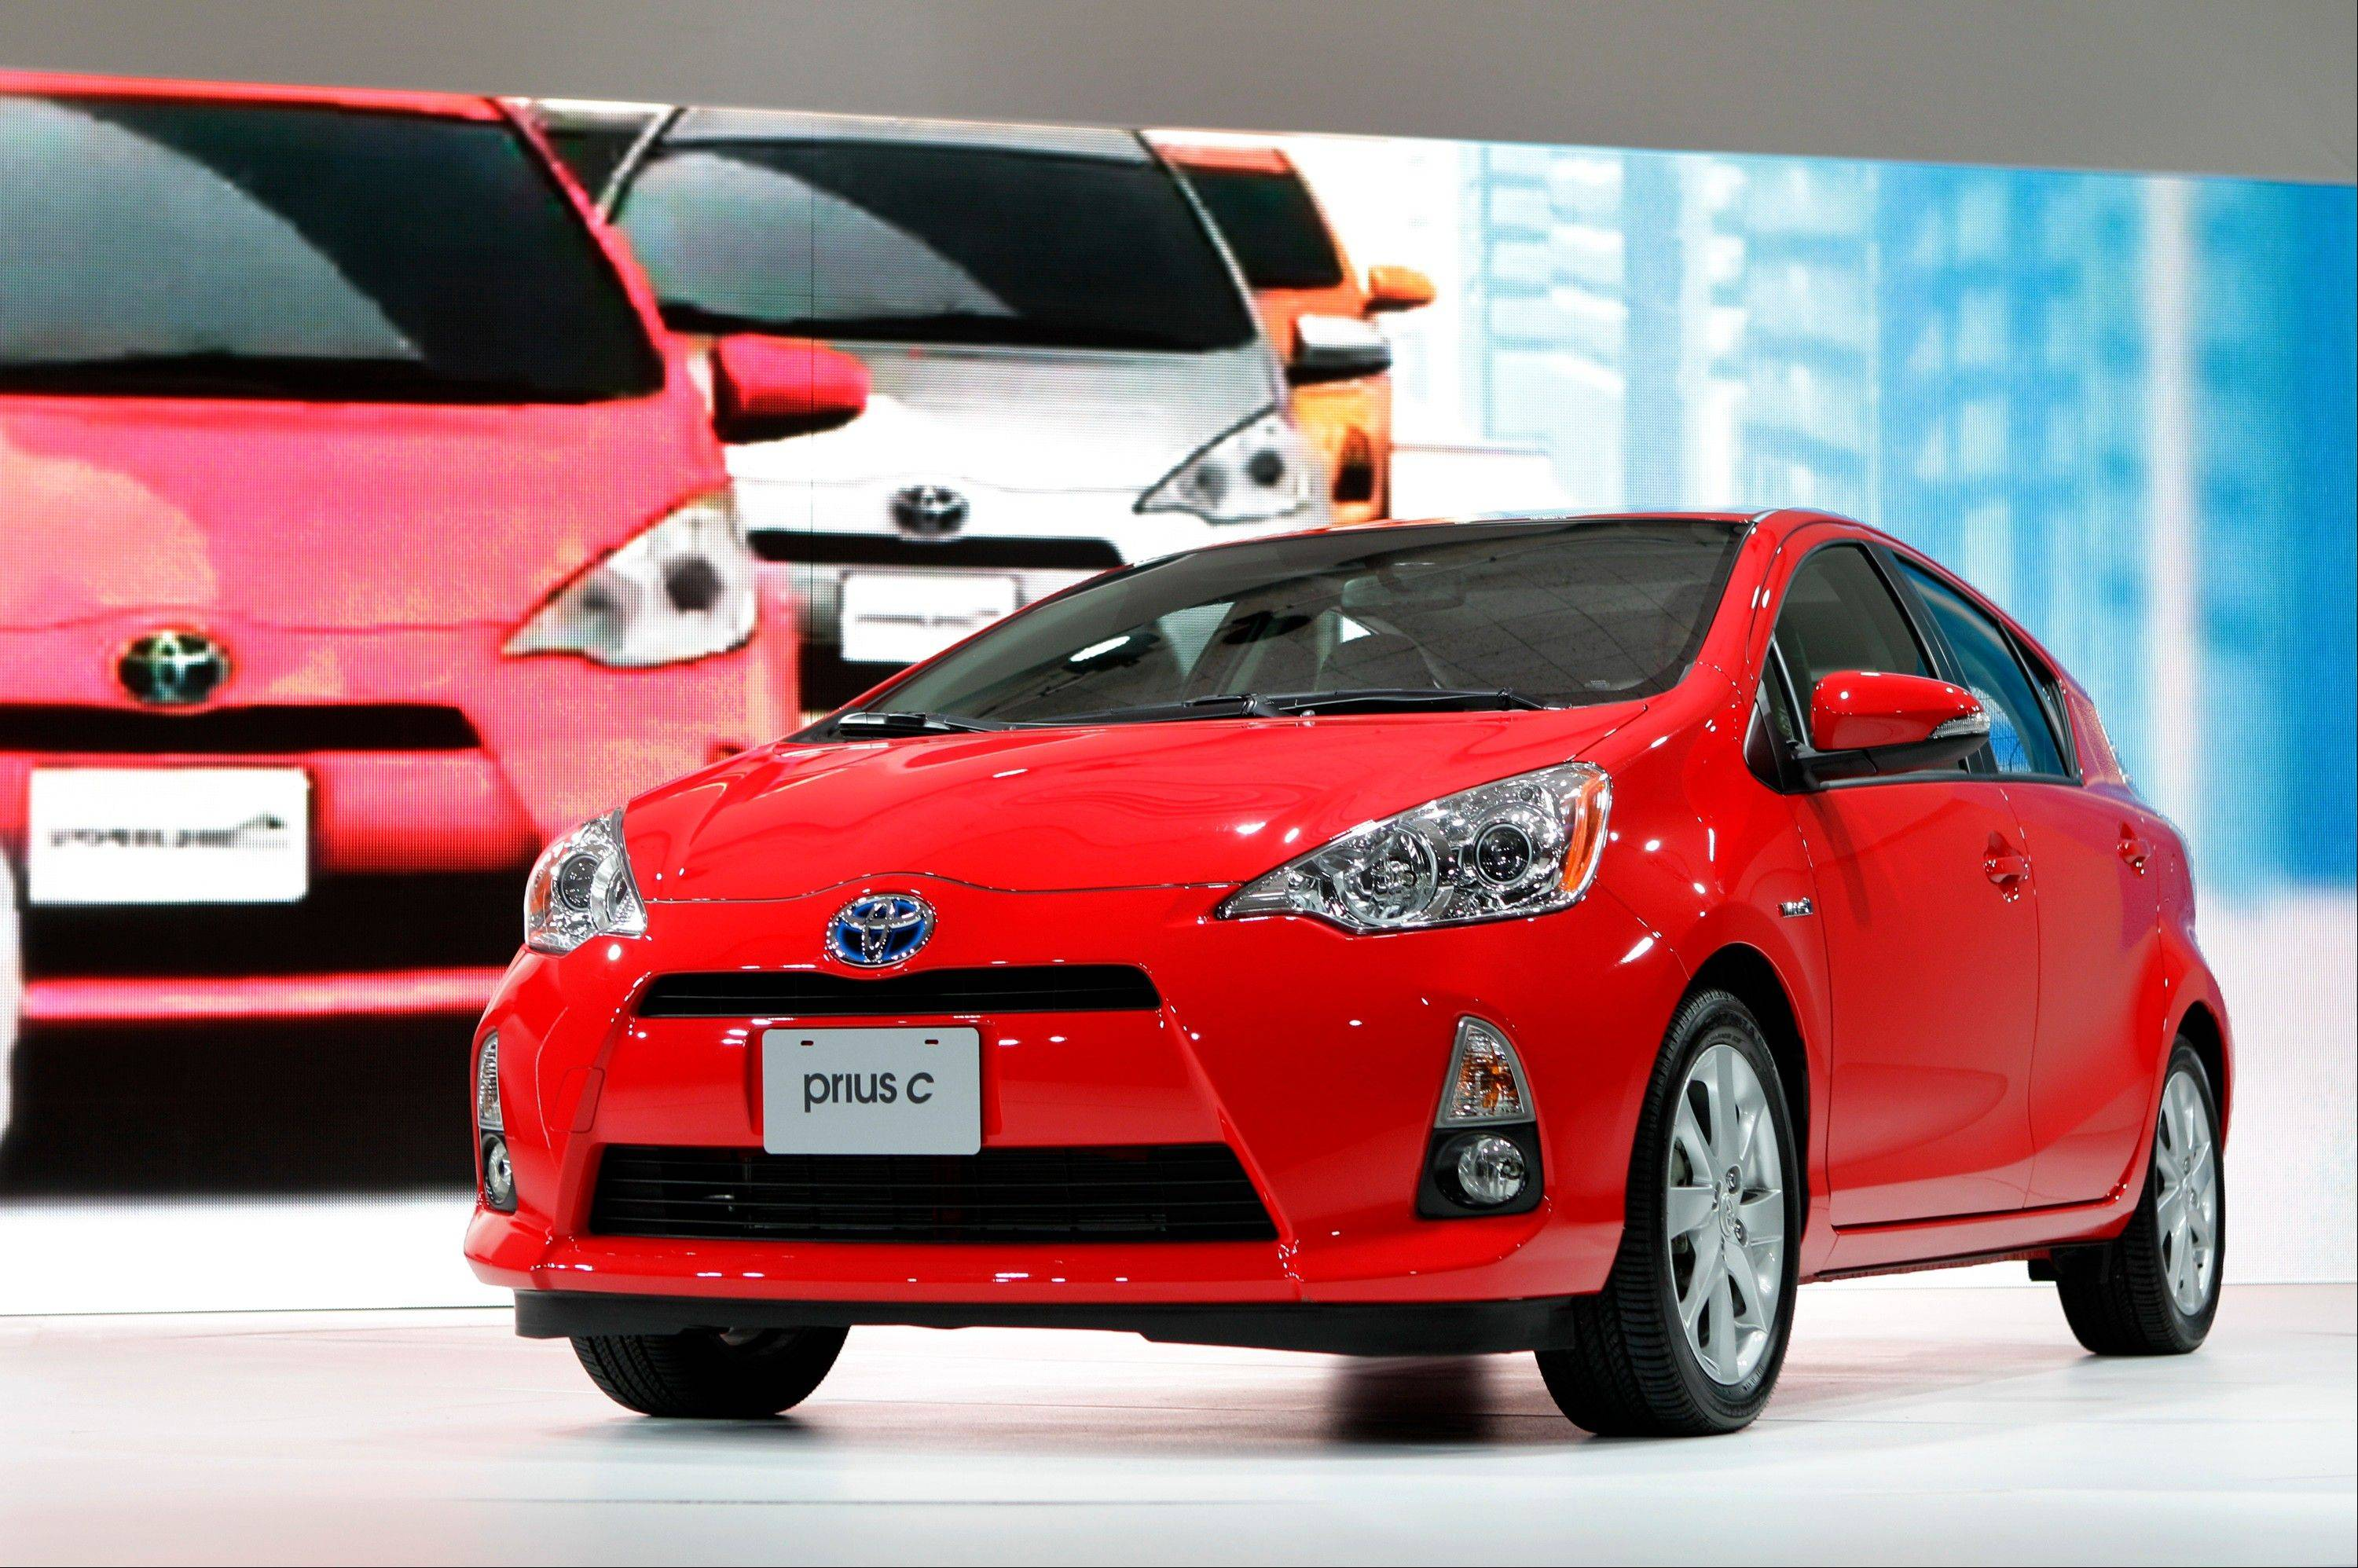 The 2013 Toyota Prius c is seen during its debut at the North American International Auto Show in Detroit last winter. Toyota is pushing to broaden the popular hybrid car's appeal.